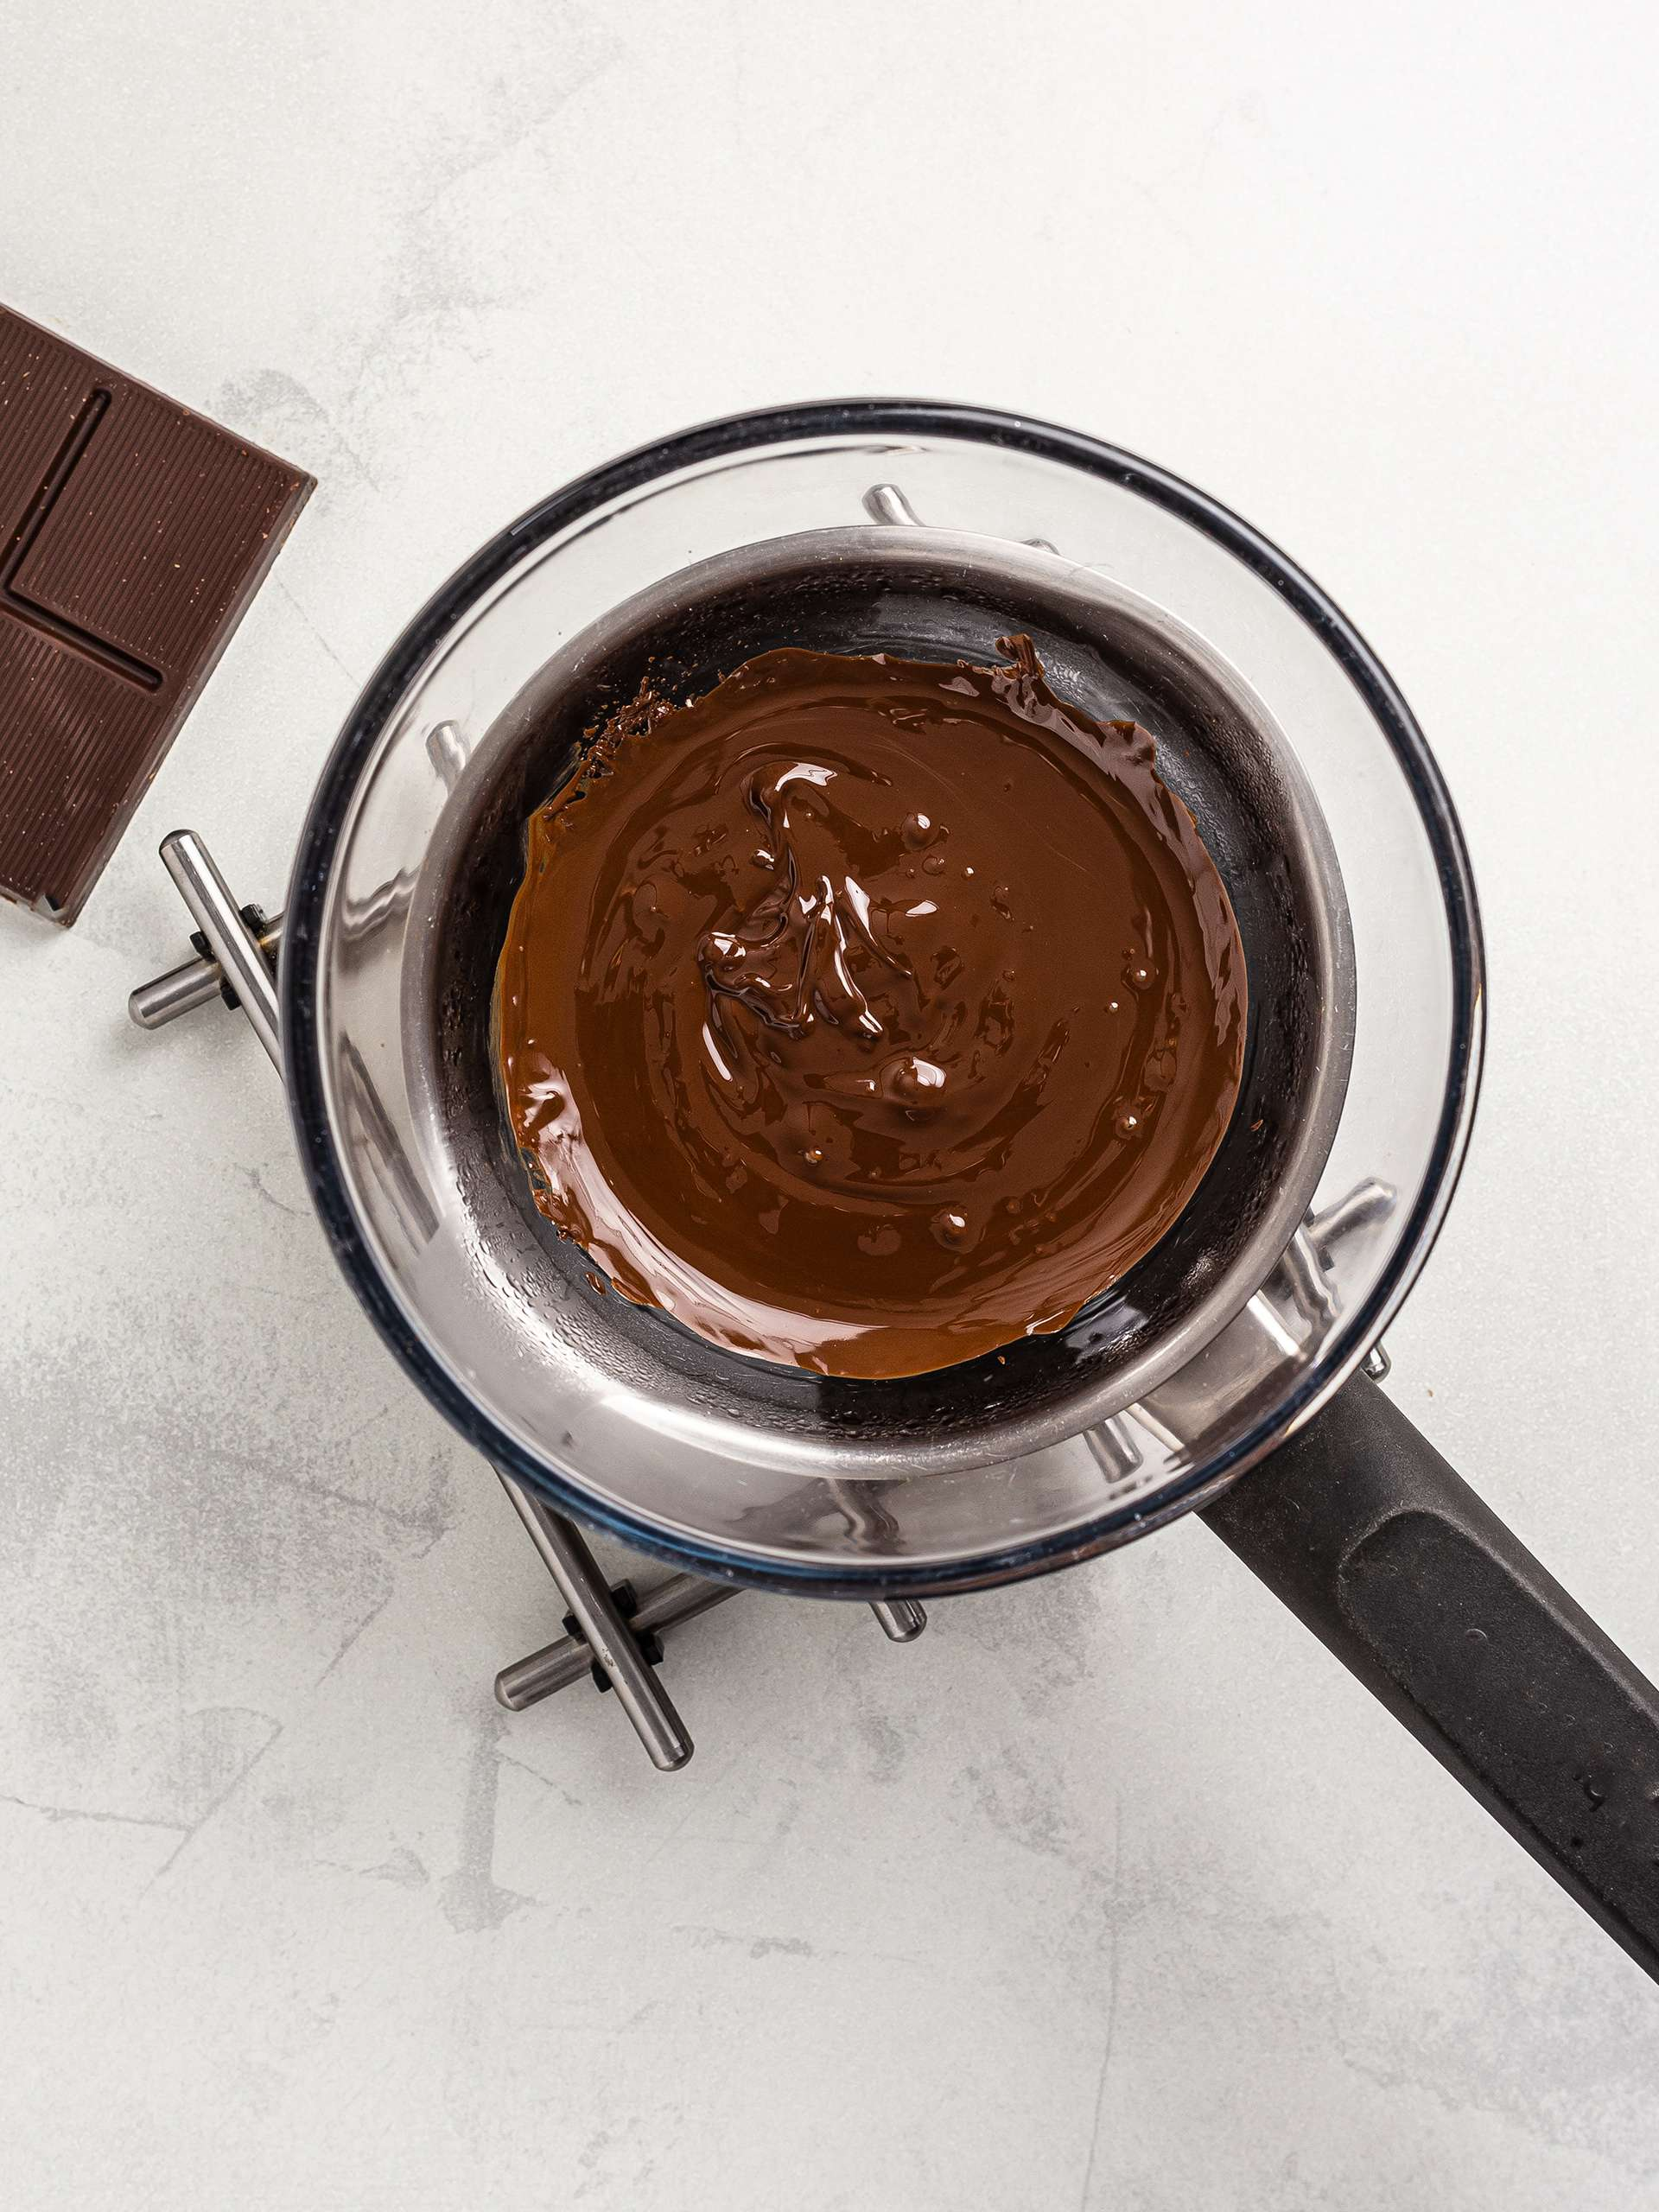 dark chocolate melted over a double boiler